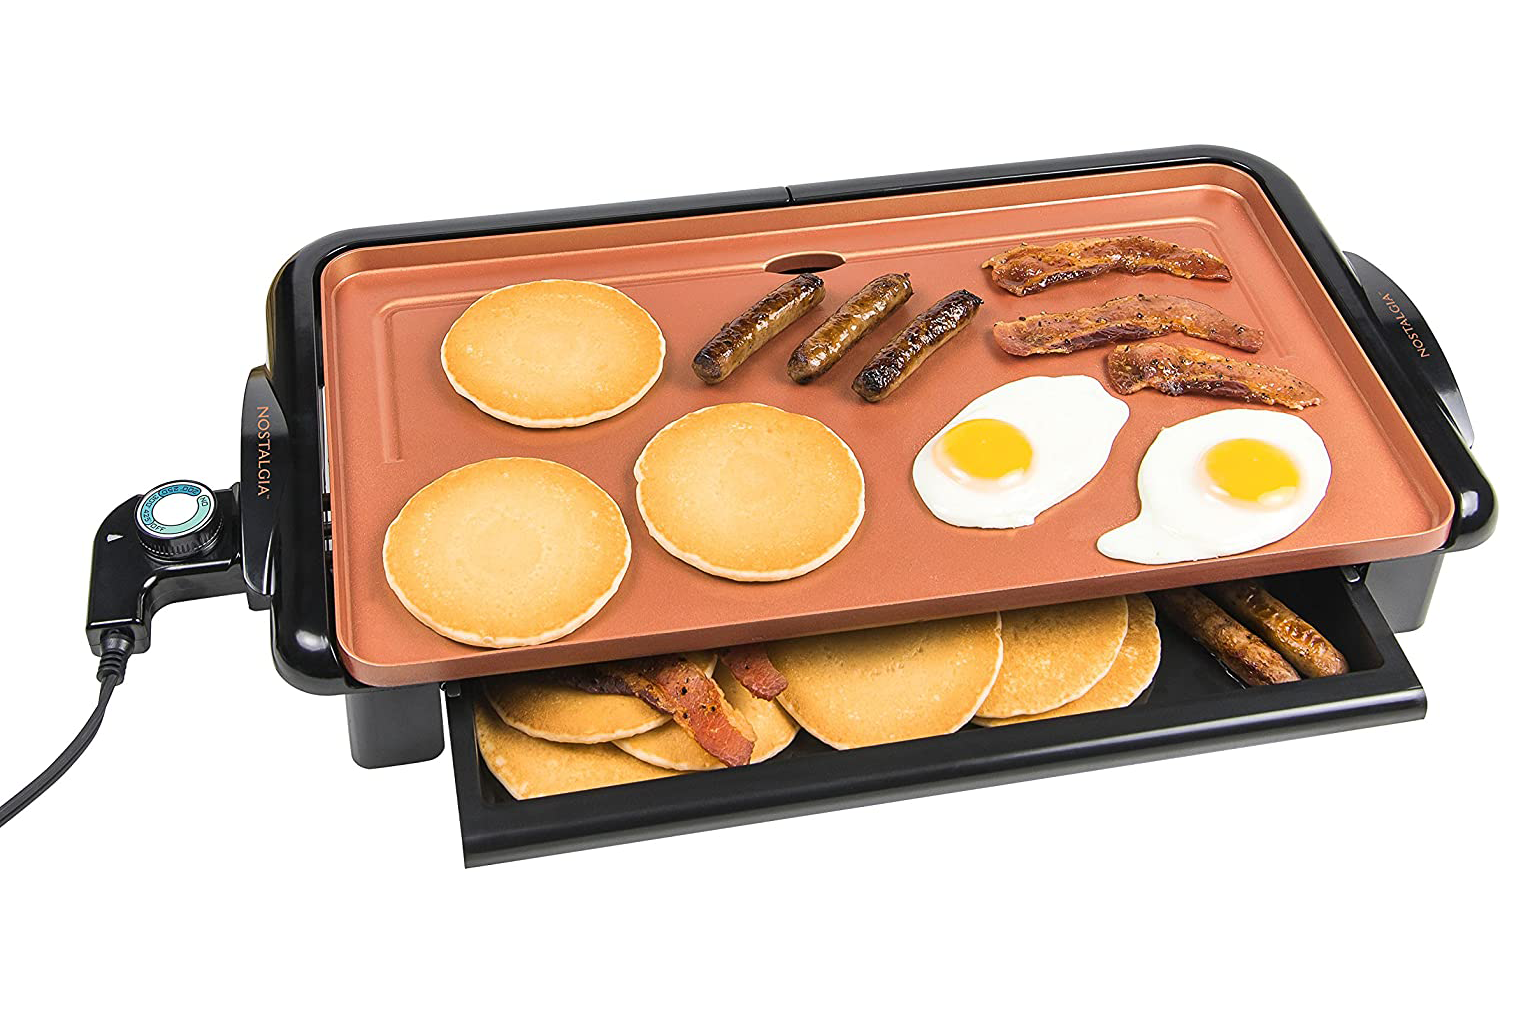 Nostalgia GD20C New and Improved Non-Stick Copper Griddle with Warming Drawer